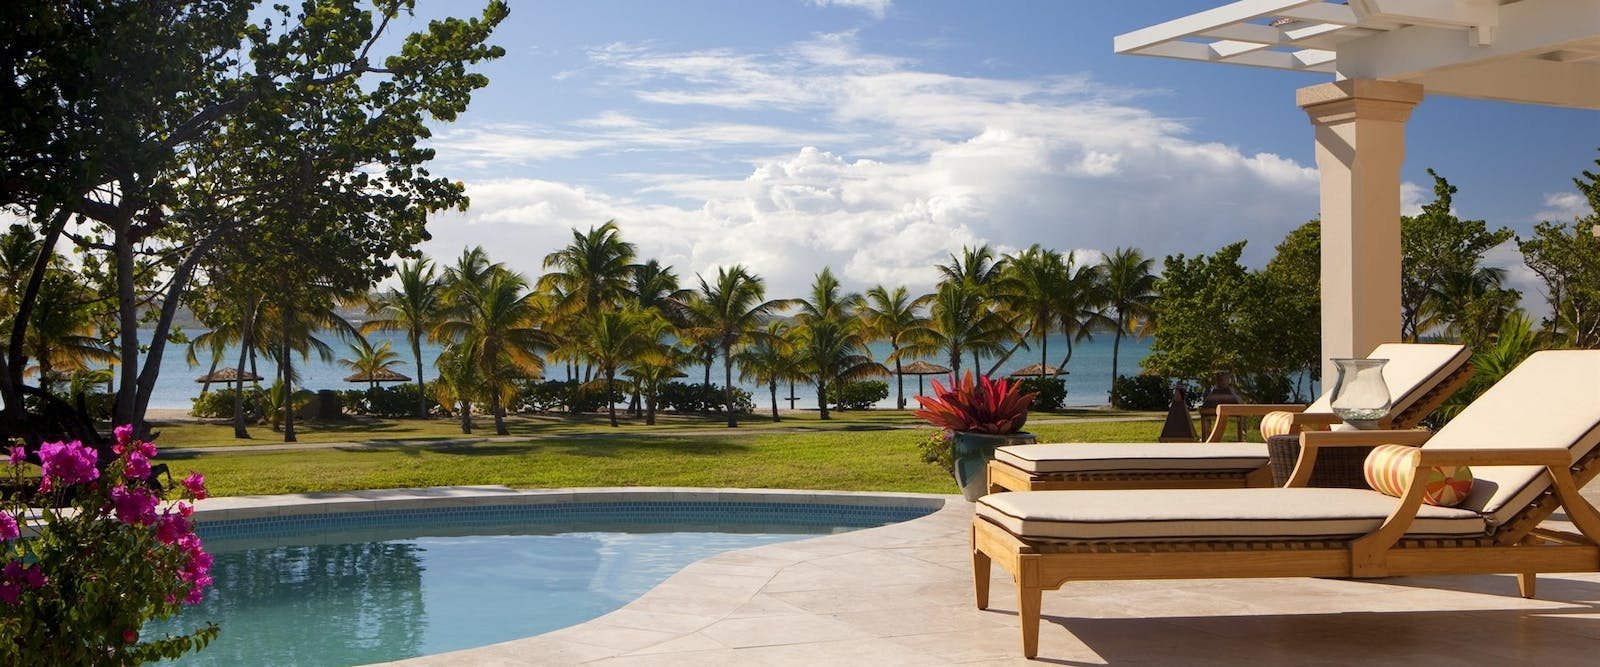 Pool Suite Terrace at Jumby Bay Island, Antigua